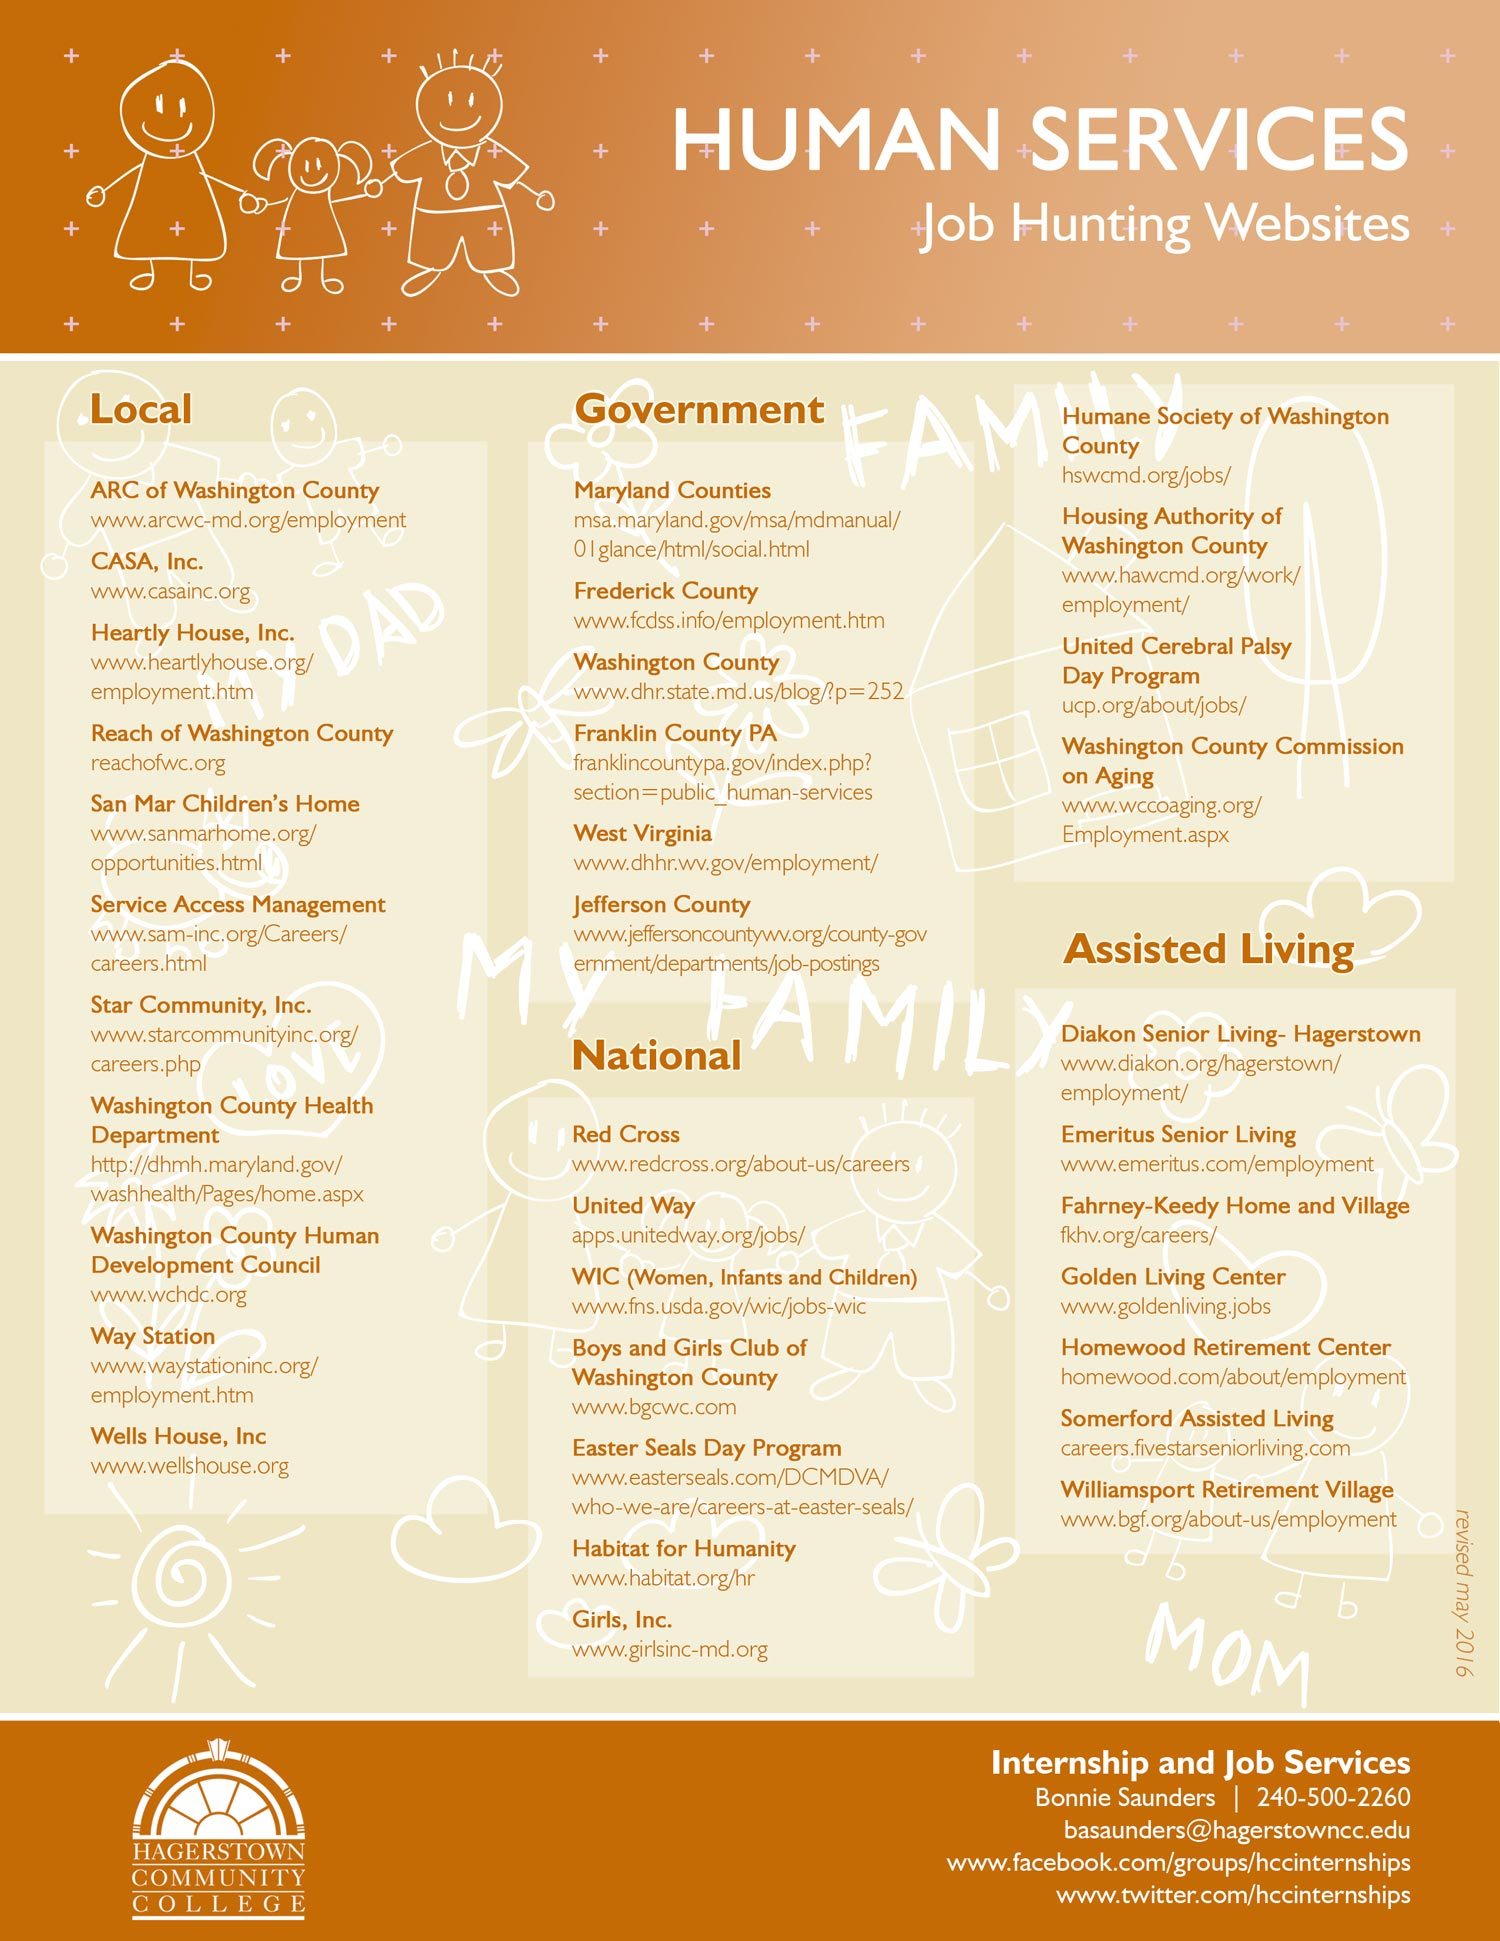 hcc job hunting websites flyers creative mind central by samantha